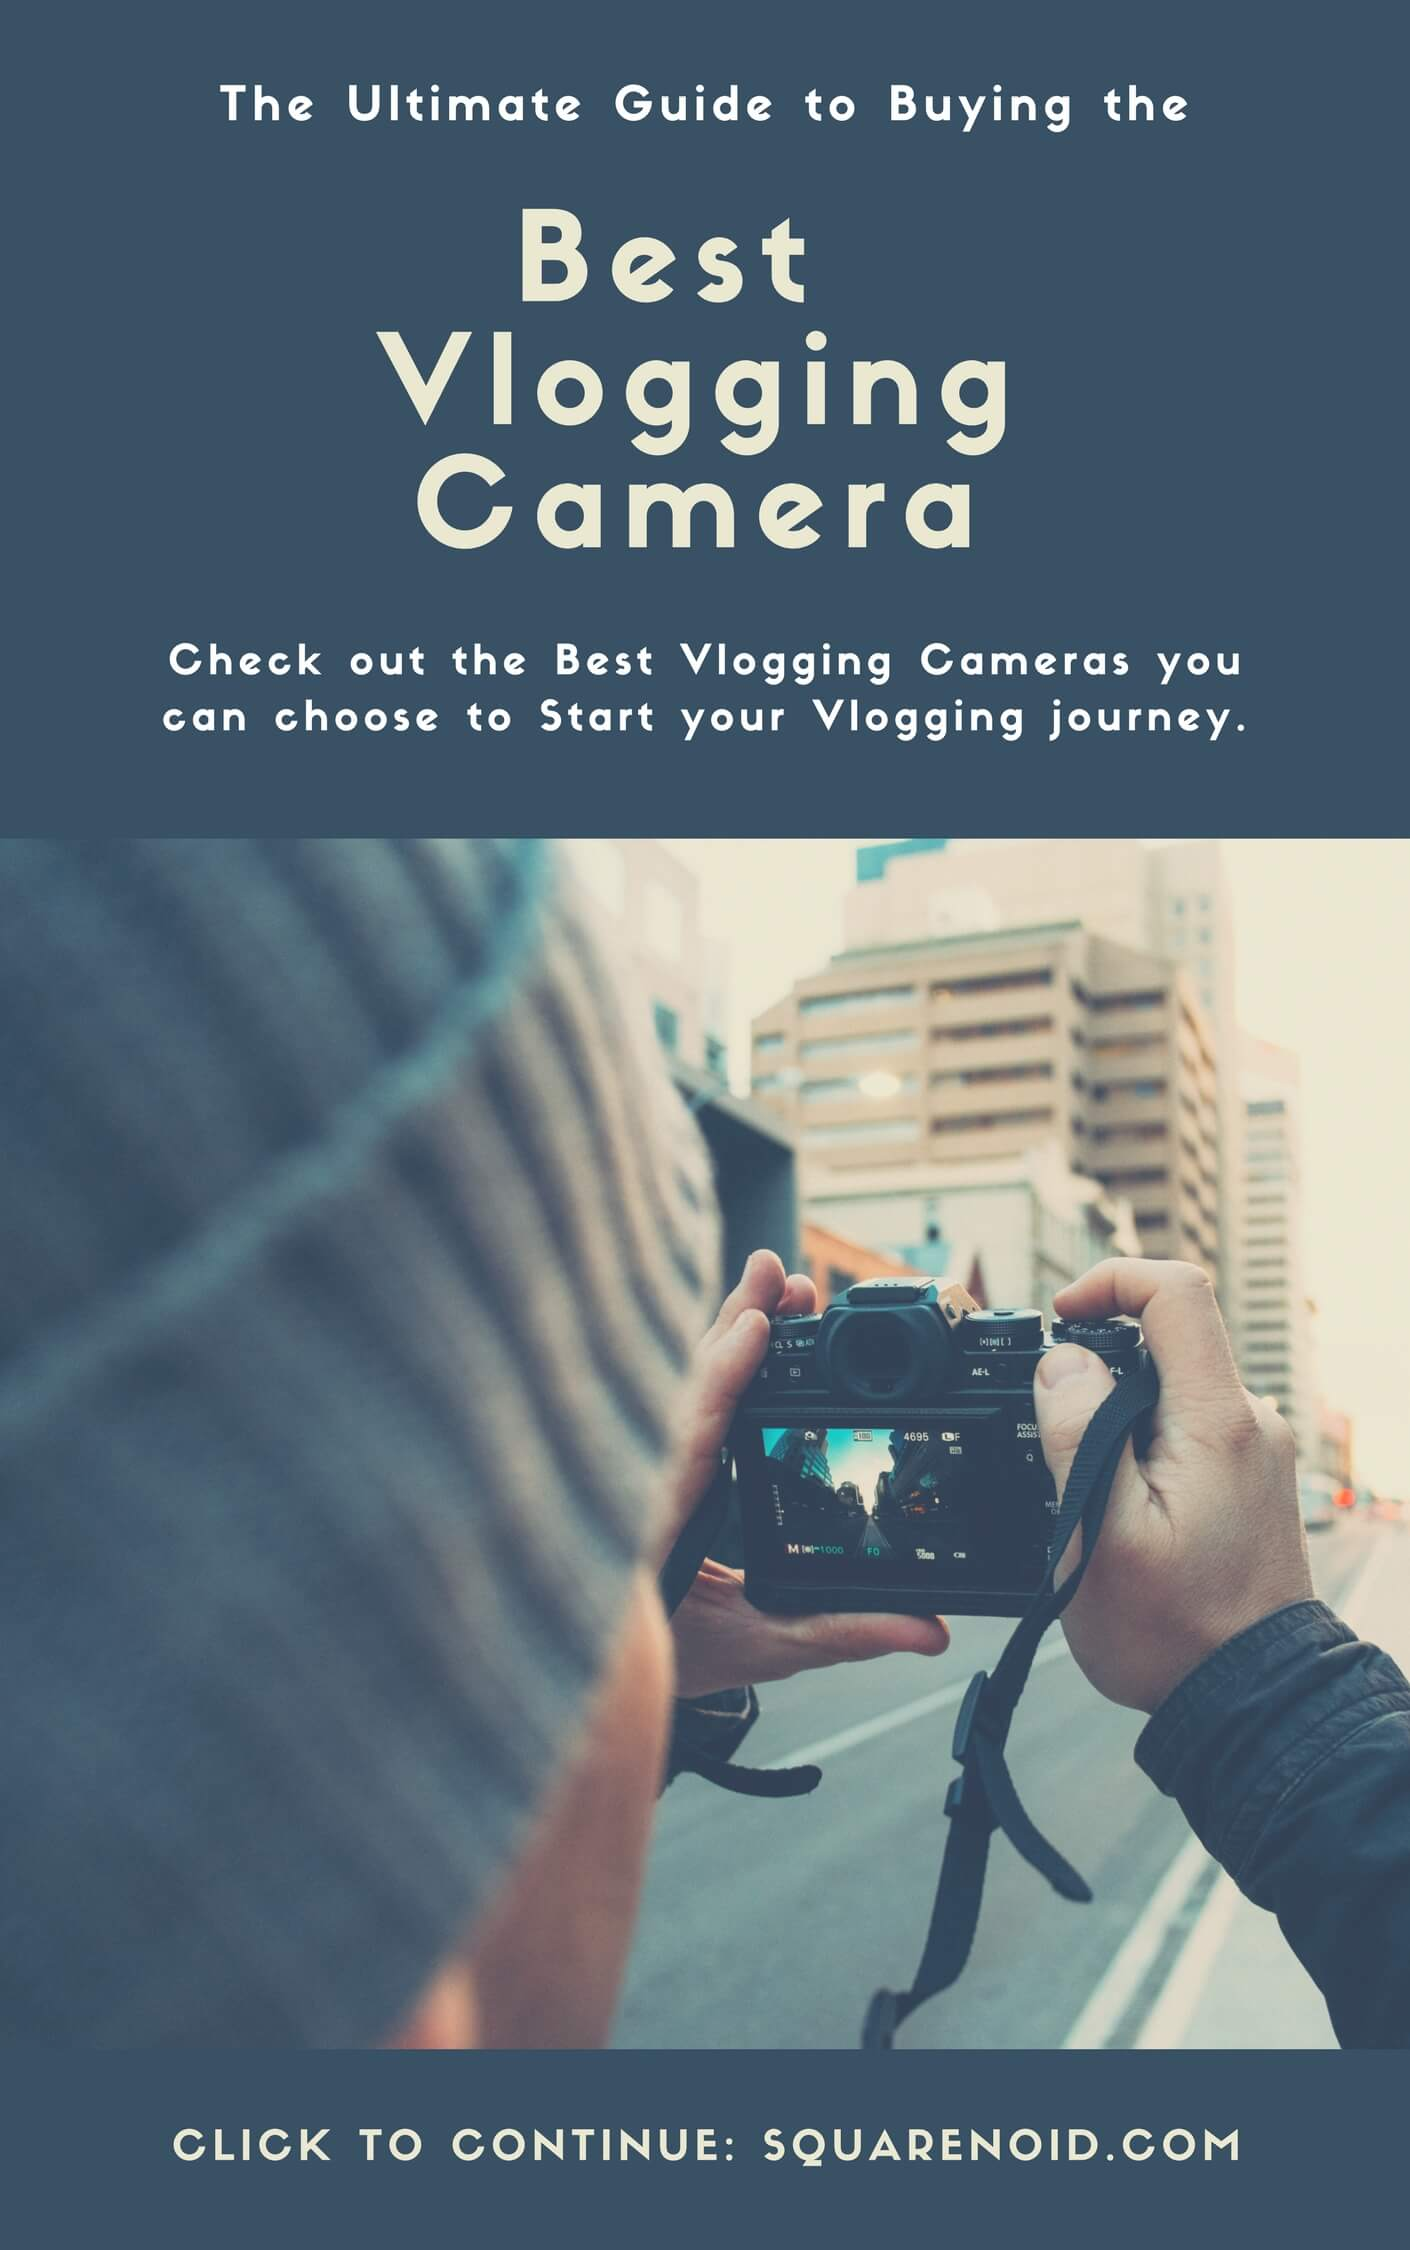 Best vlogging cameras for vloggers